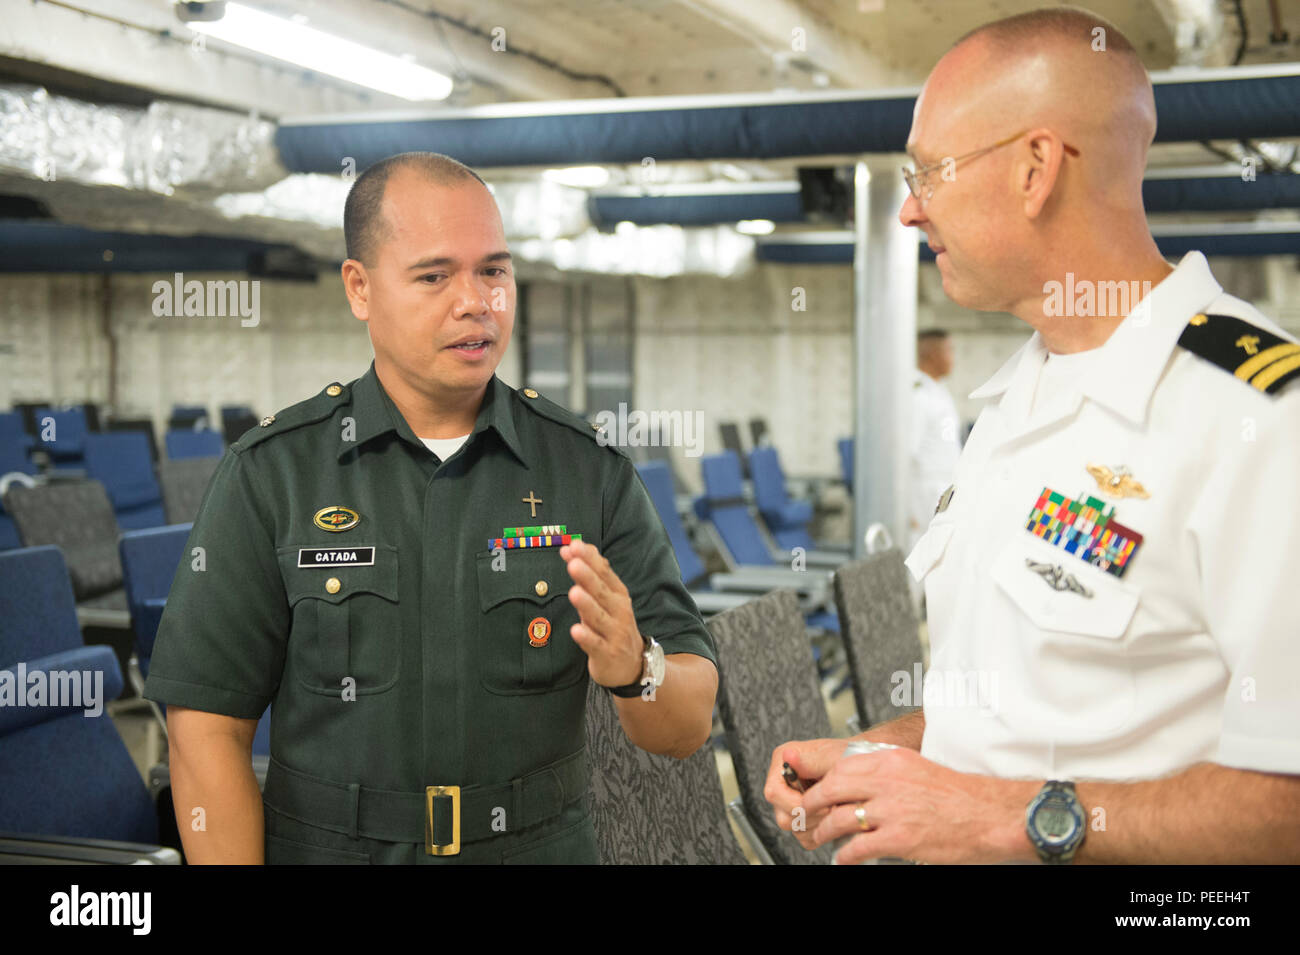 150814-N-MK341-020 SAN FERNANDO CITY, Philippines (August 14, 2015) – U.S. Navy Chaplain Lt. Michael Beasley (right) speaks to Philippine Navy Chaplain Maj. Apolonio Catada during a closing reception aboard the Military Sealift Command joint high speed vessel USNS Millinocket (JHSV 3) Aug. 14. Millinocket and embarked Task Force Forager are serving as the secondary platform for Pacific Partnership, led by an expeditionary command element from the Navy's 30th Naval Construction Regiment (30 NCR) from Port Hueneme, Calif. Now in its 10th iteration, Pacific Partnership is the largest annual multi - Stock Image